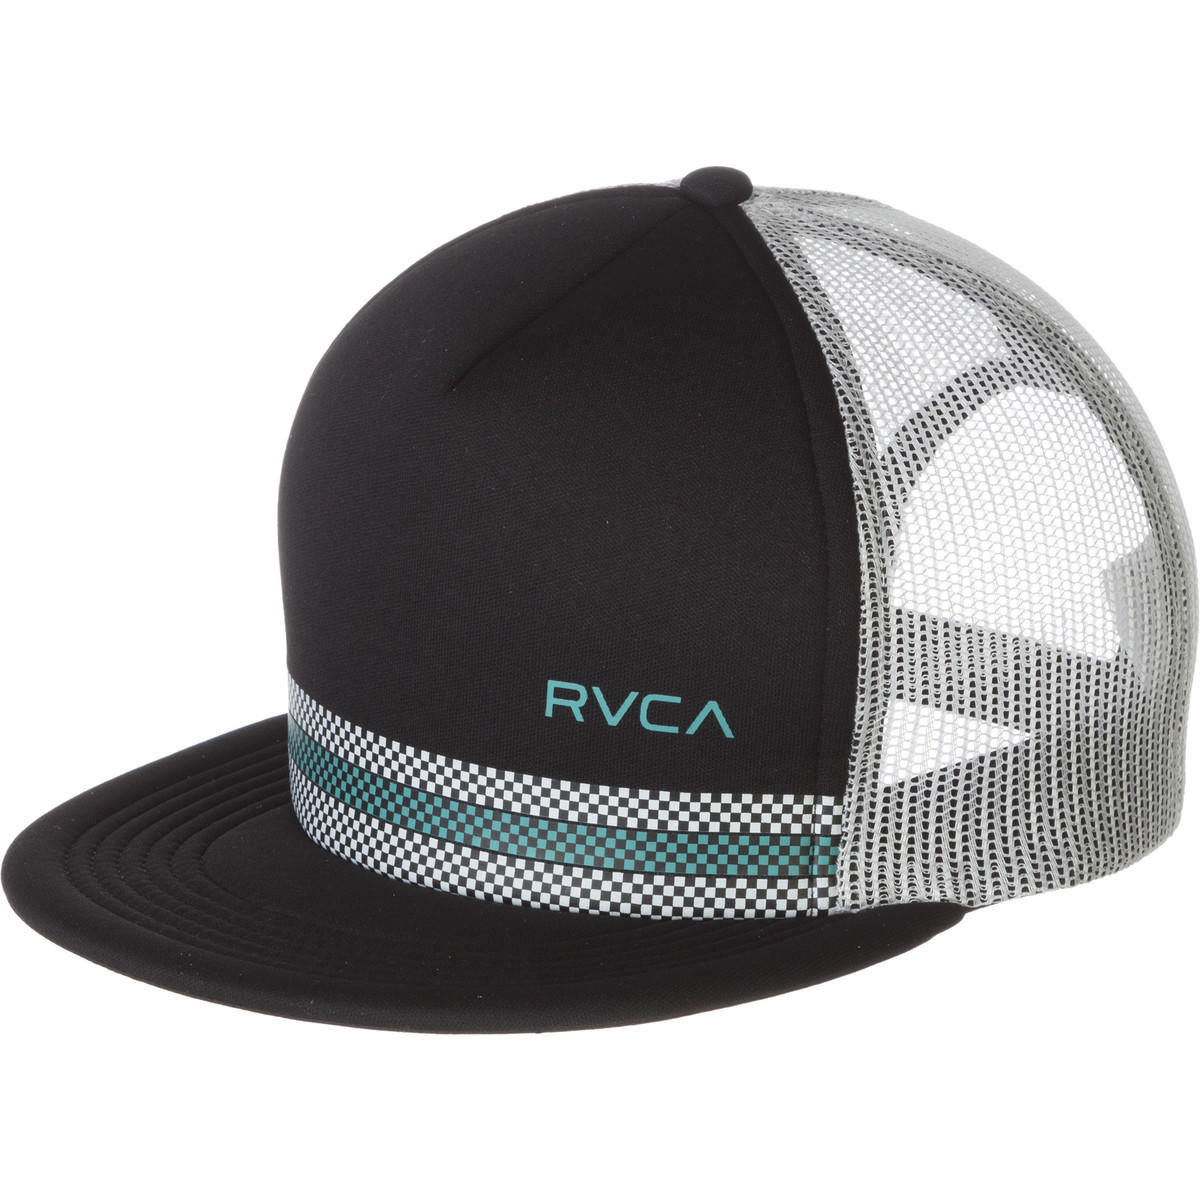 rvca draughts trucker hat from backcountry